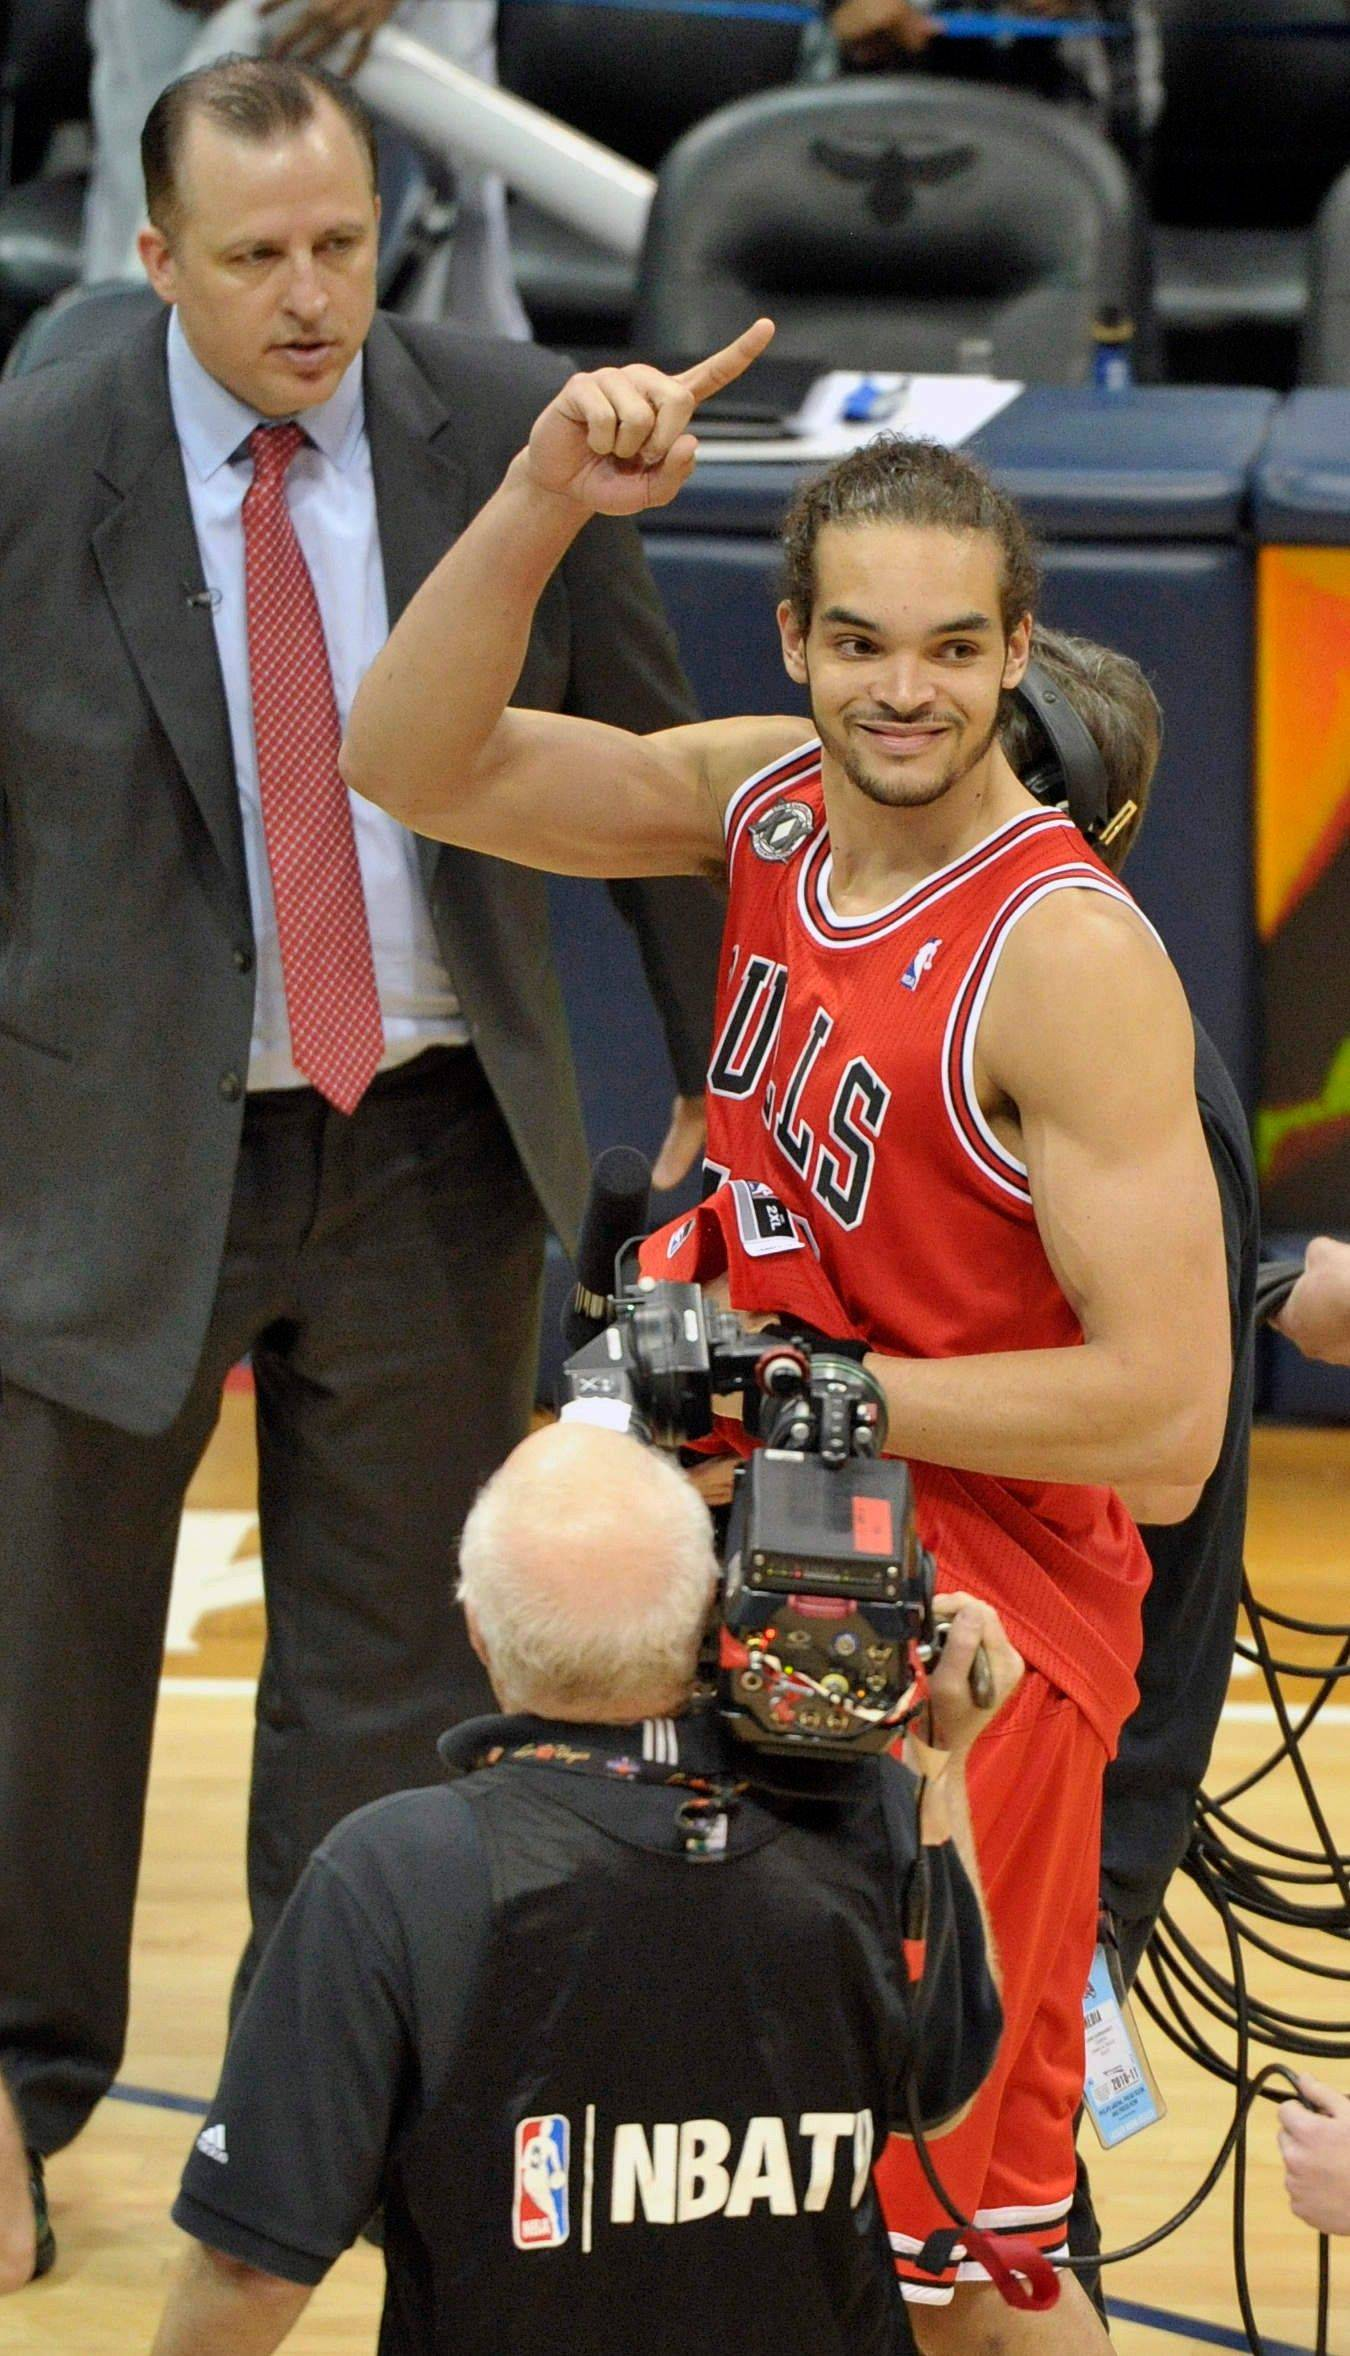 Chicago Bulls center Joakim Noah reacts after the teams' win against the Atlanta Hawks Thursday. Chicago won 93-73 to advance to the Eastern Conference Finals.